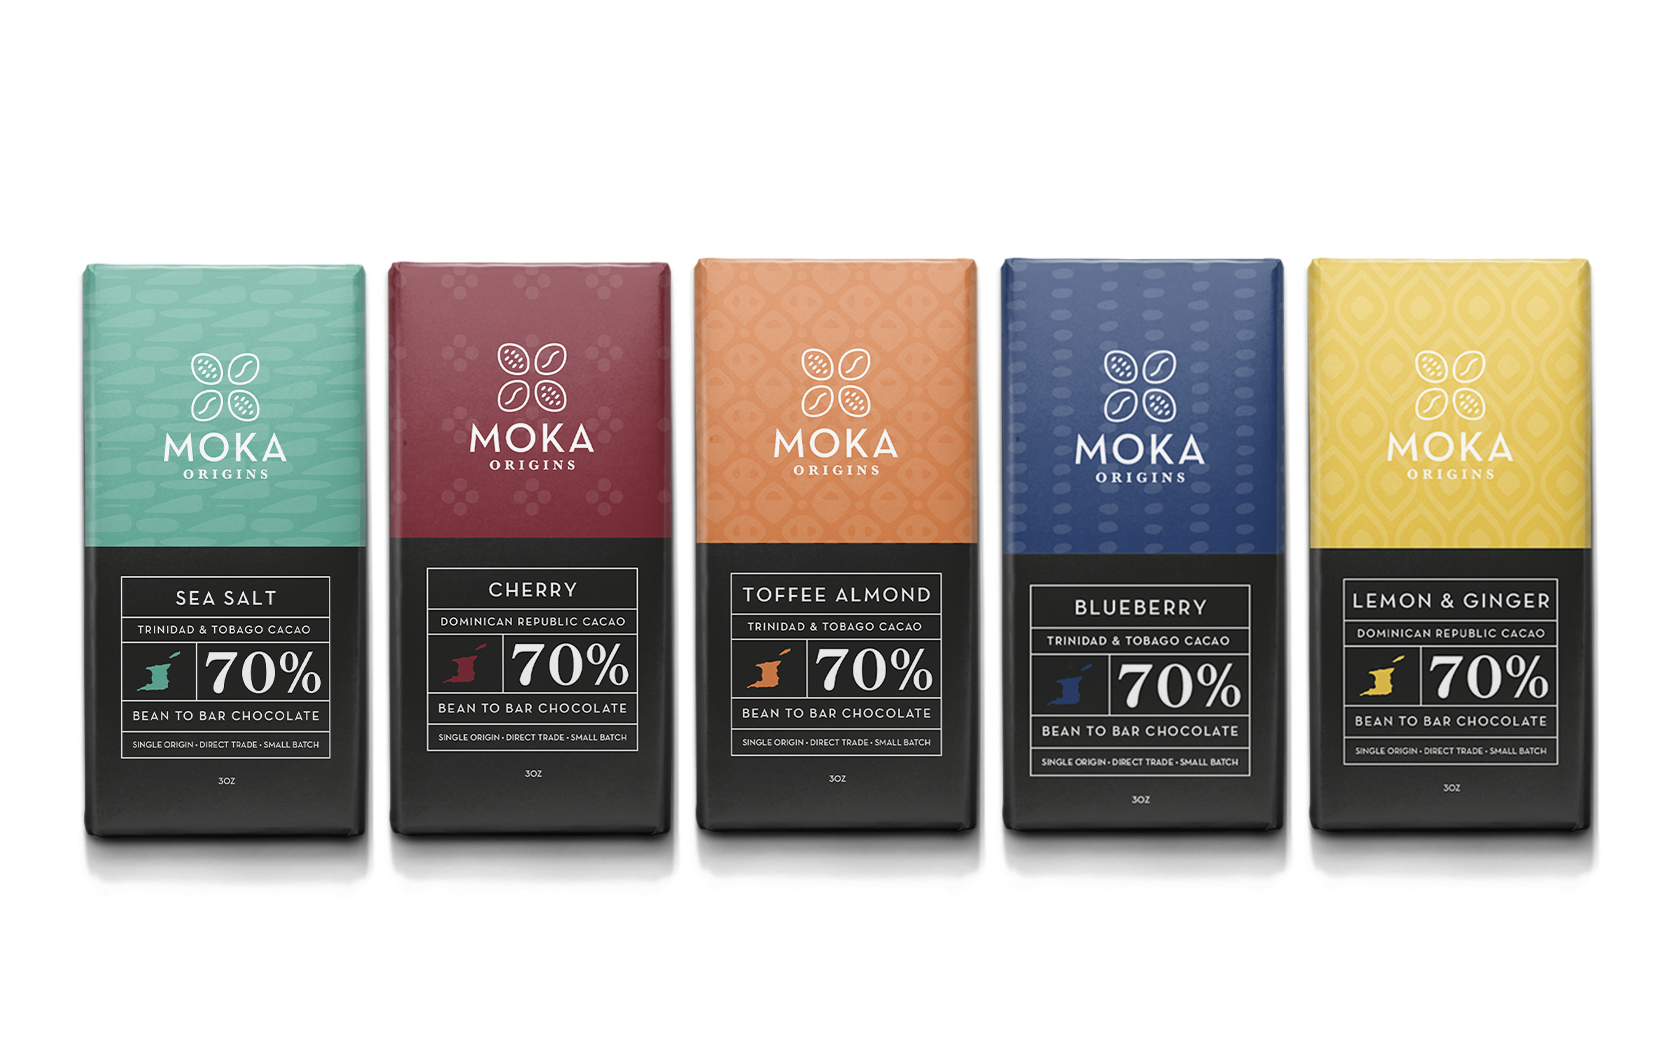 Moka origins Chocolate